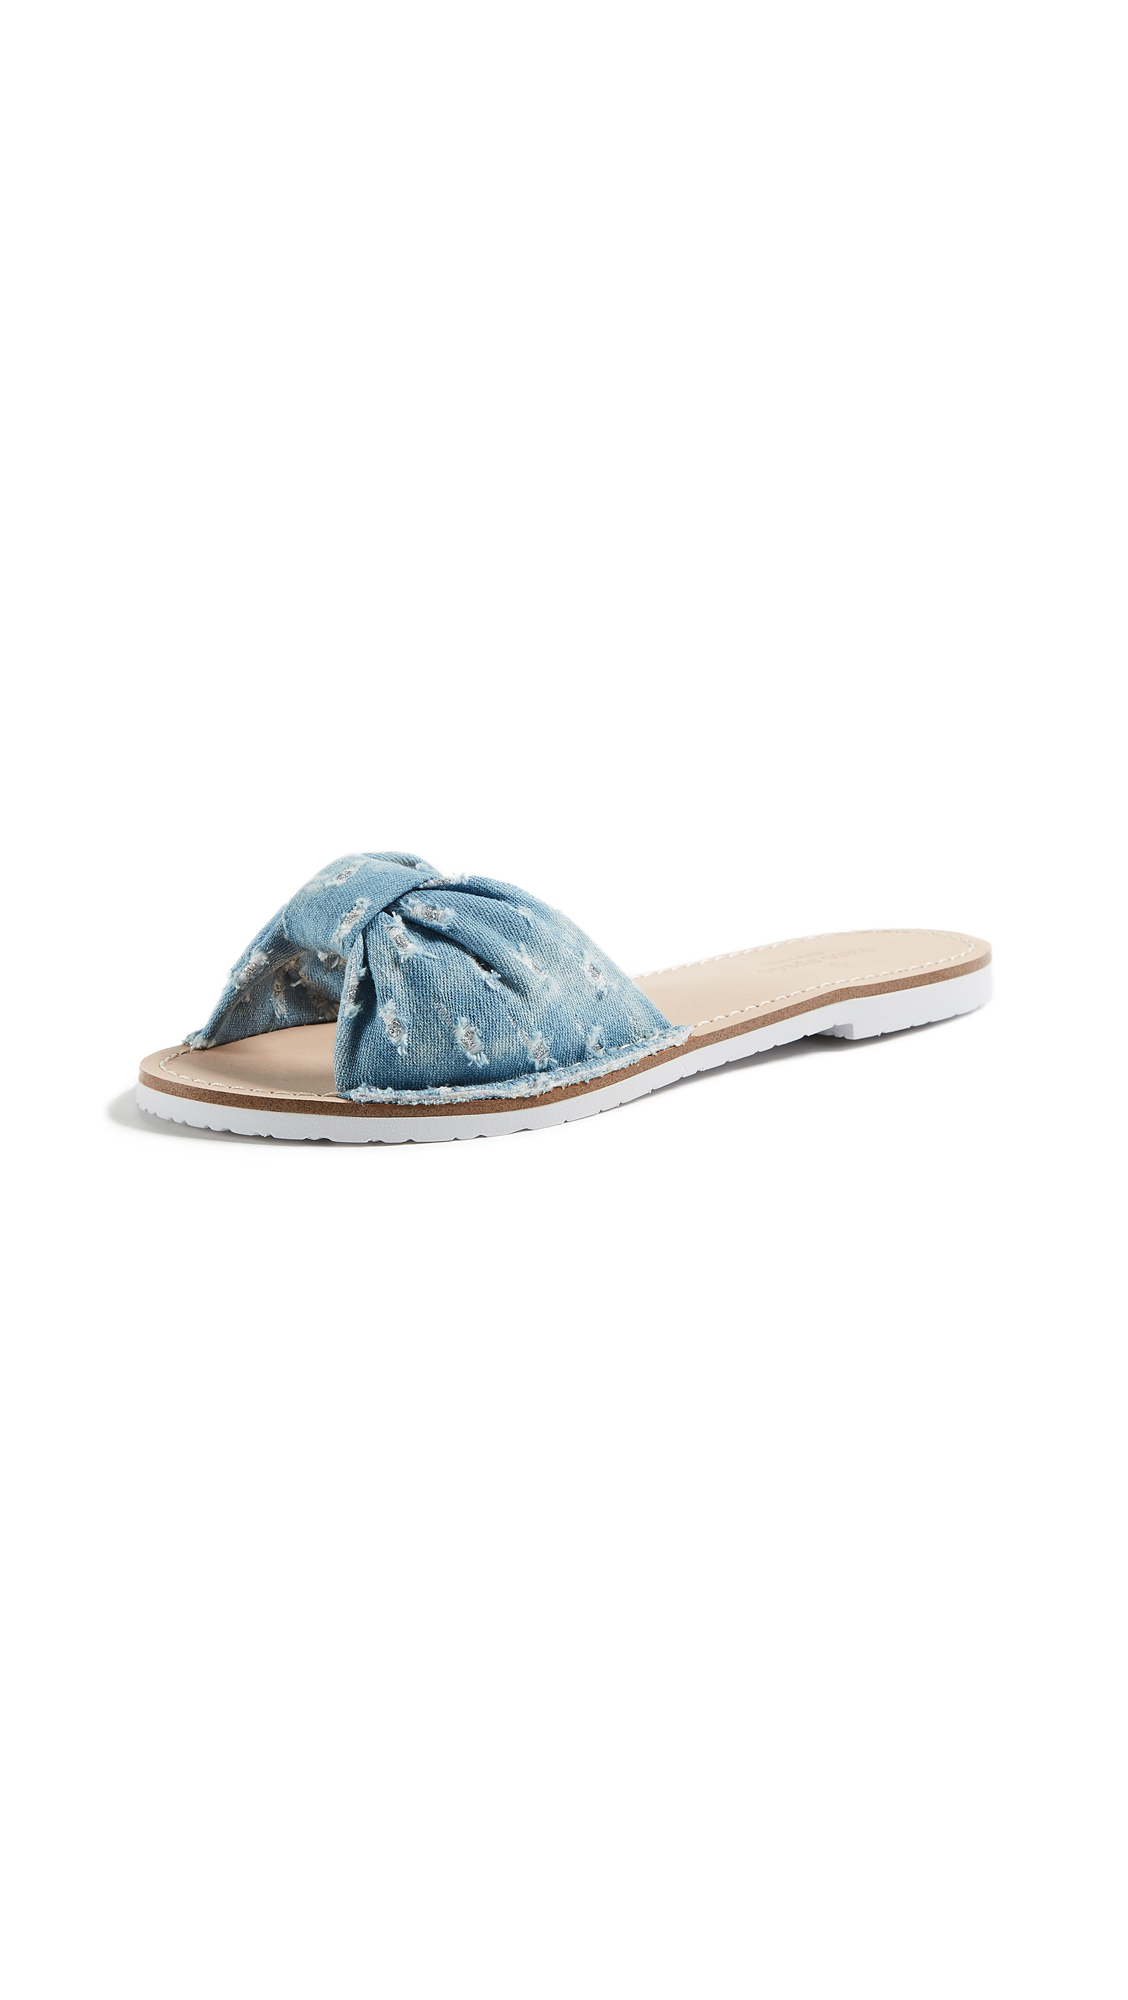 Kate Spade New York Indi Slides - Light Blue